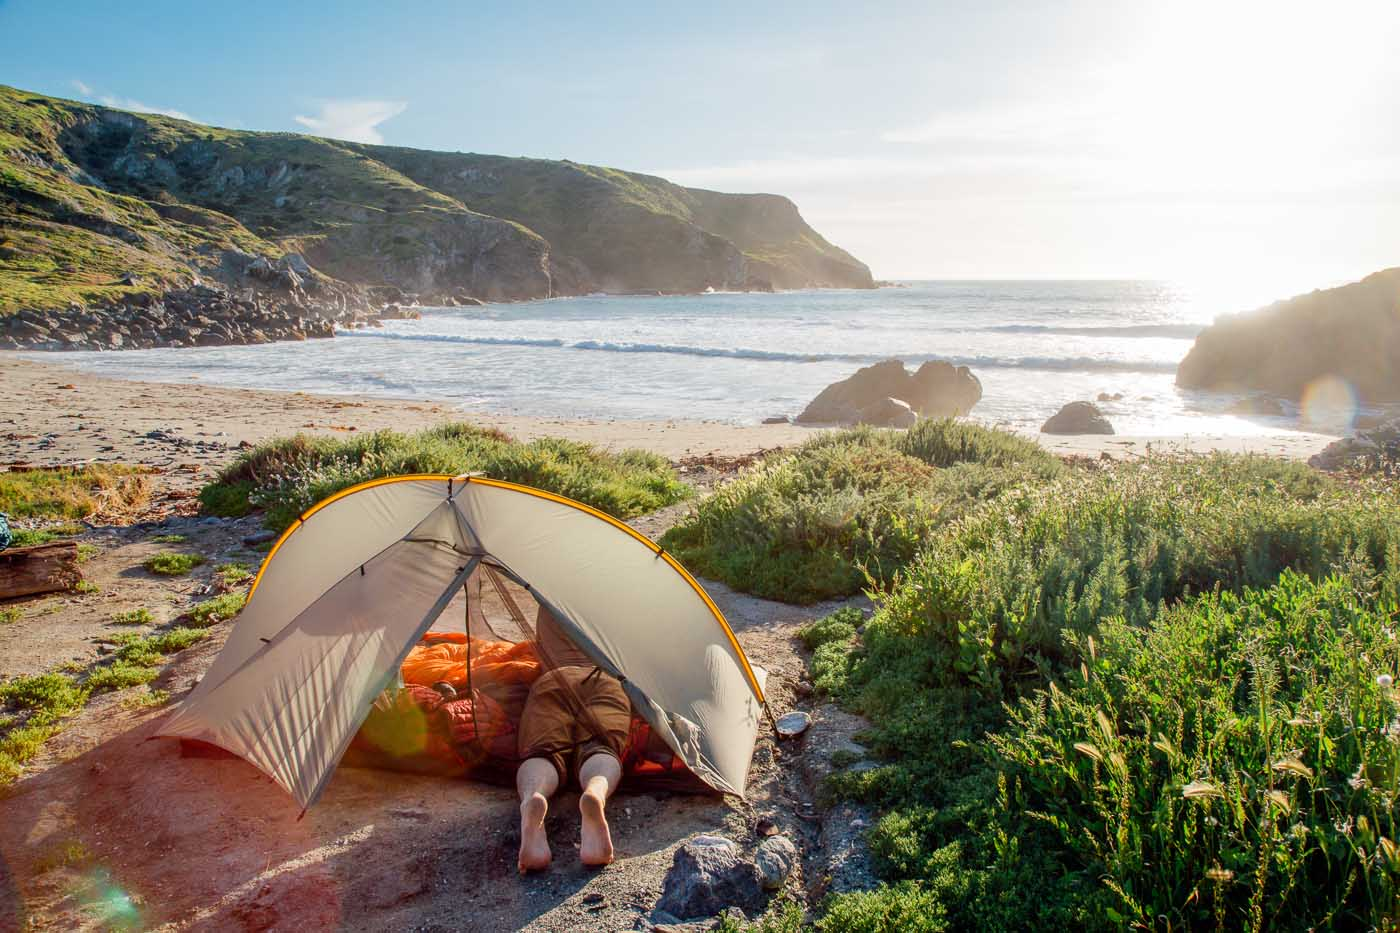 Man in a tent on the beach in Shark Harbor, Catalina Island